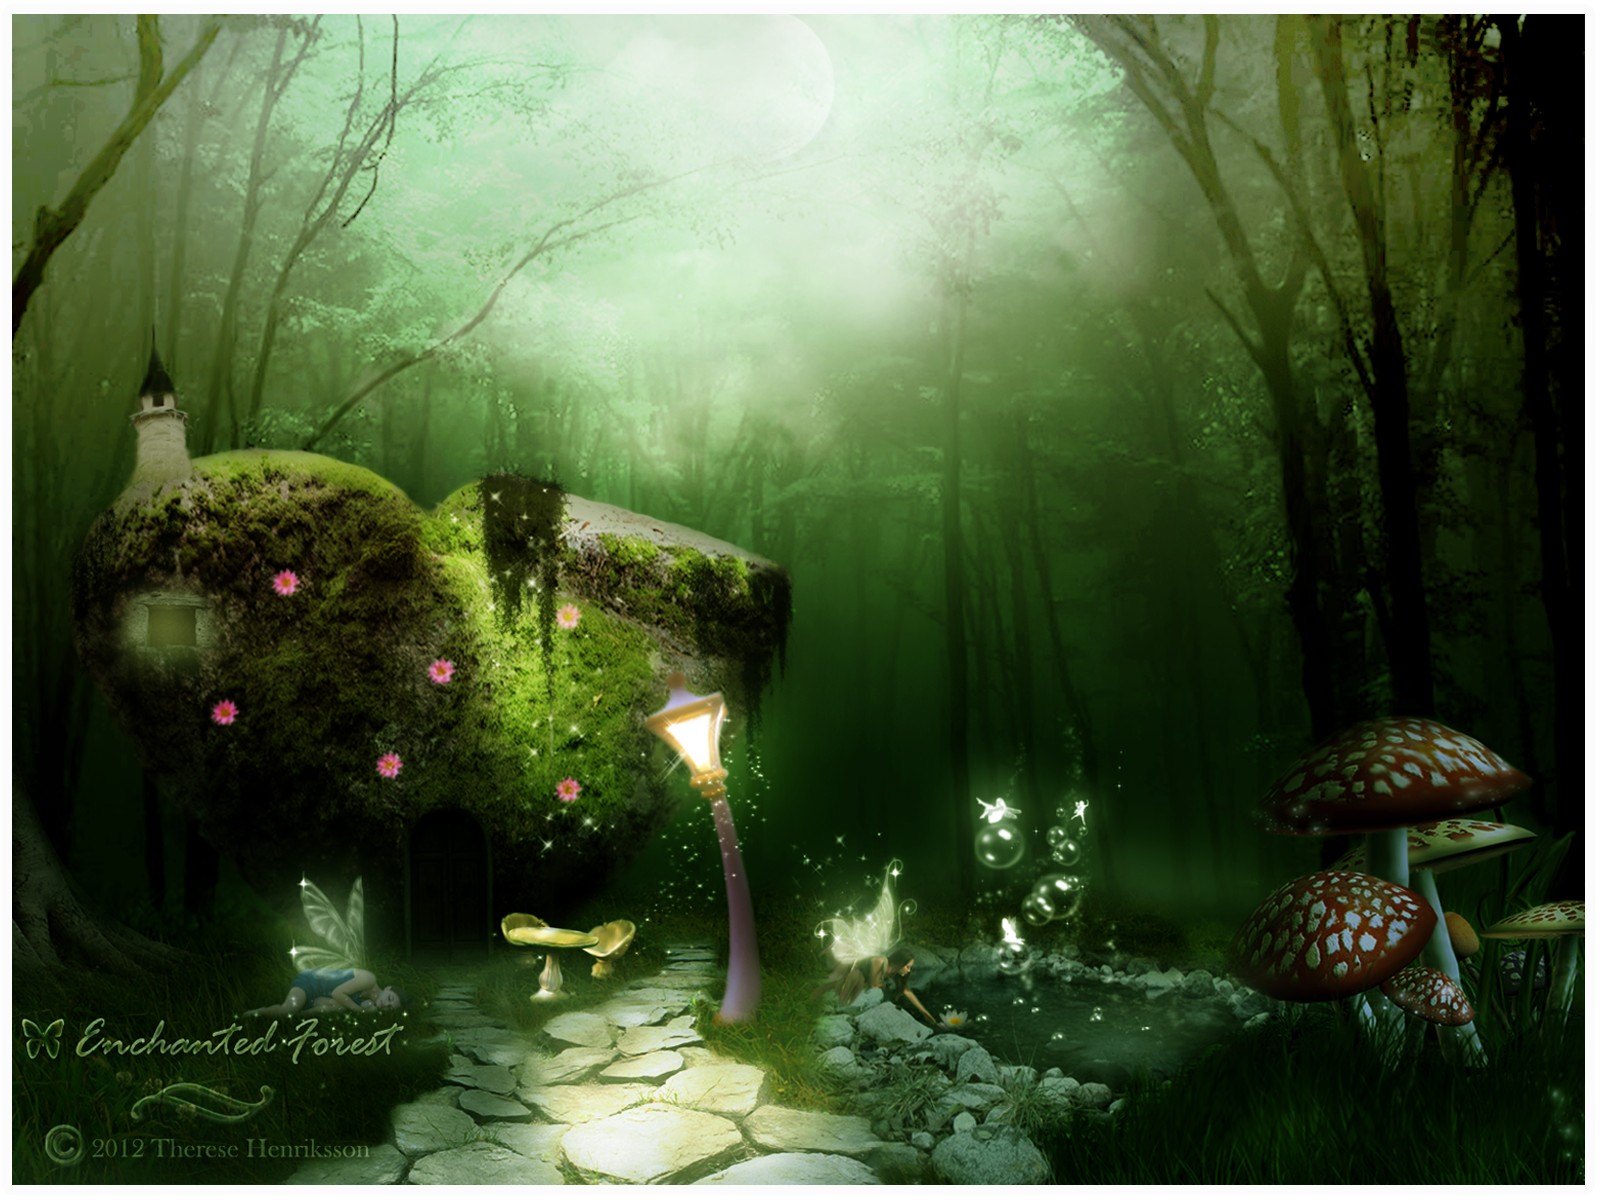 Enchanted Forest By Tdesignstudio On Deviantart